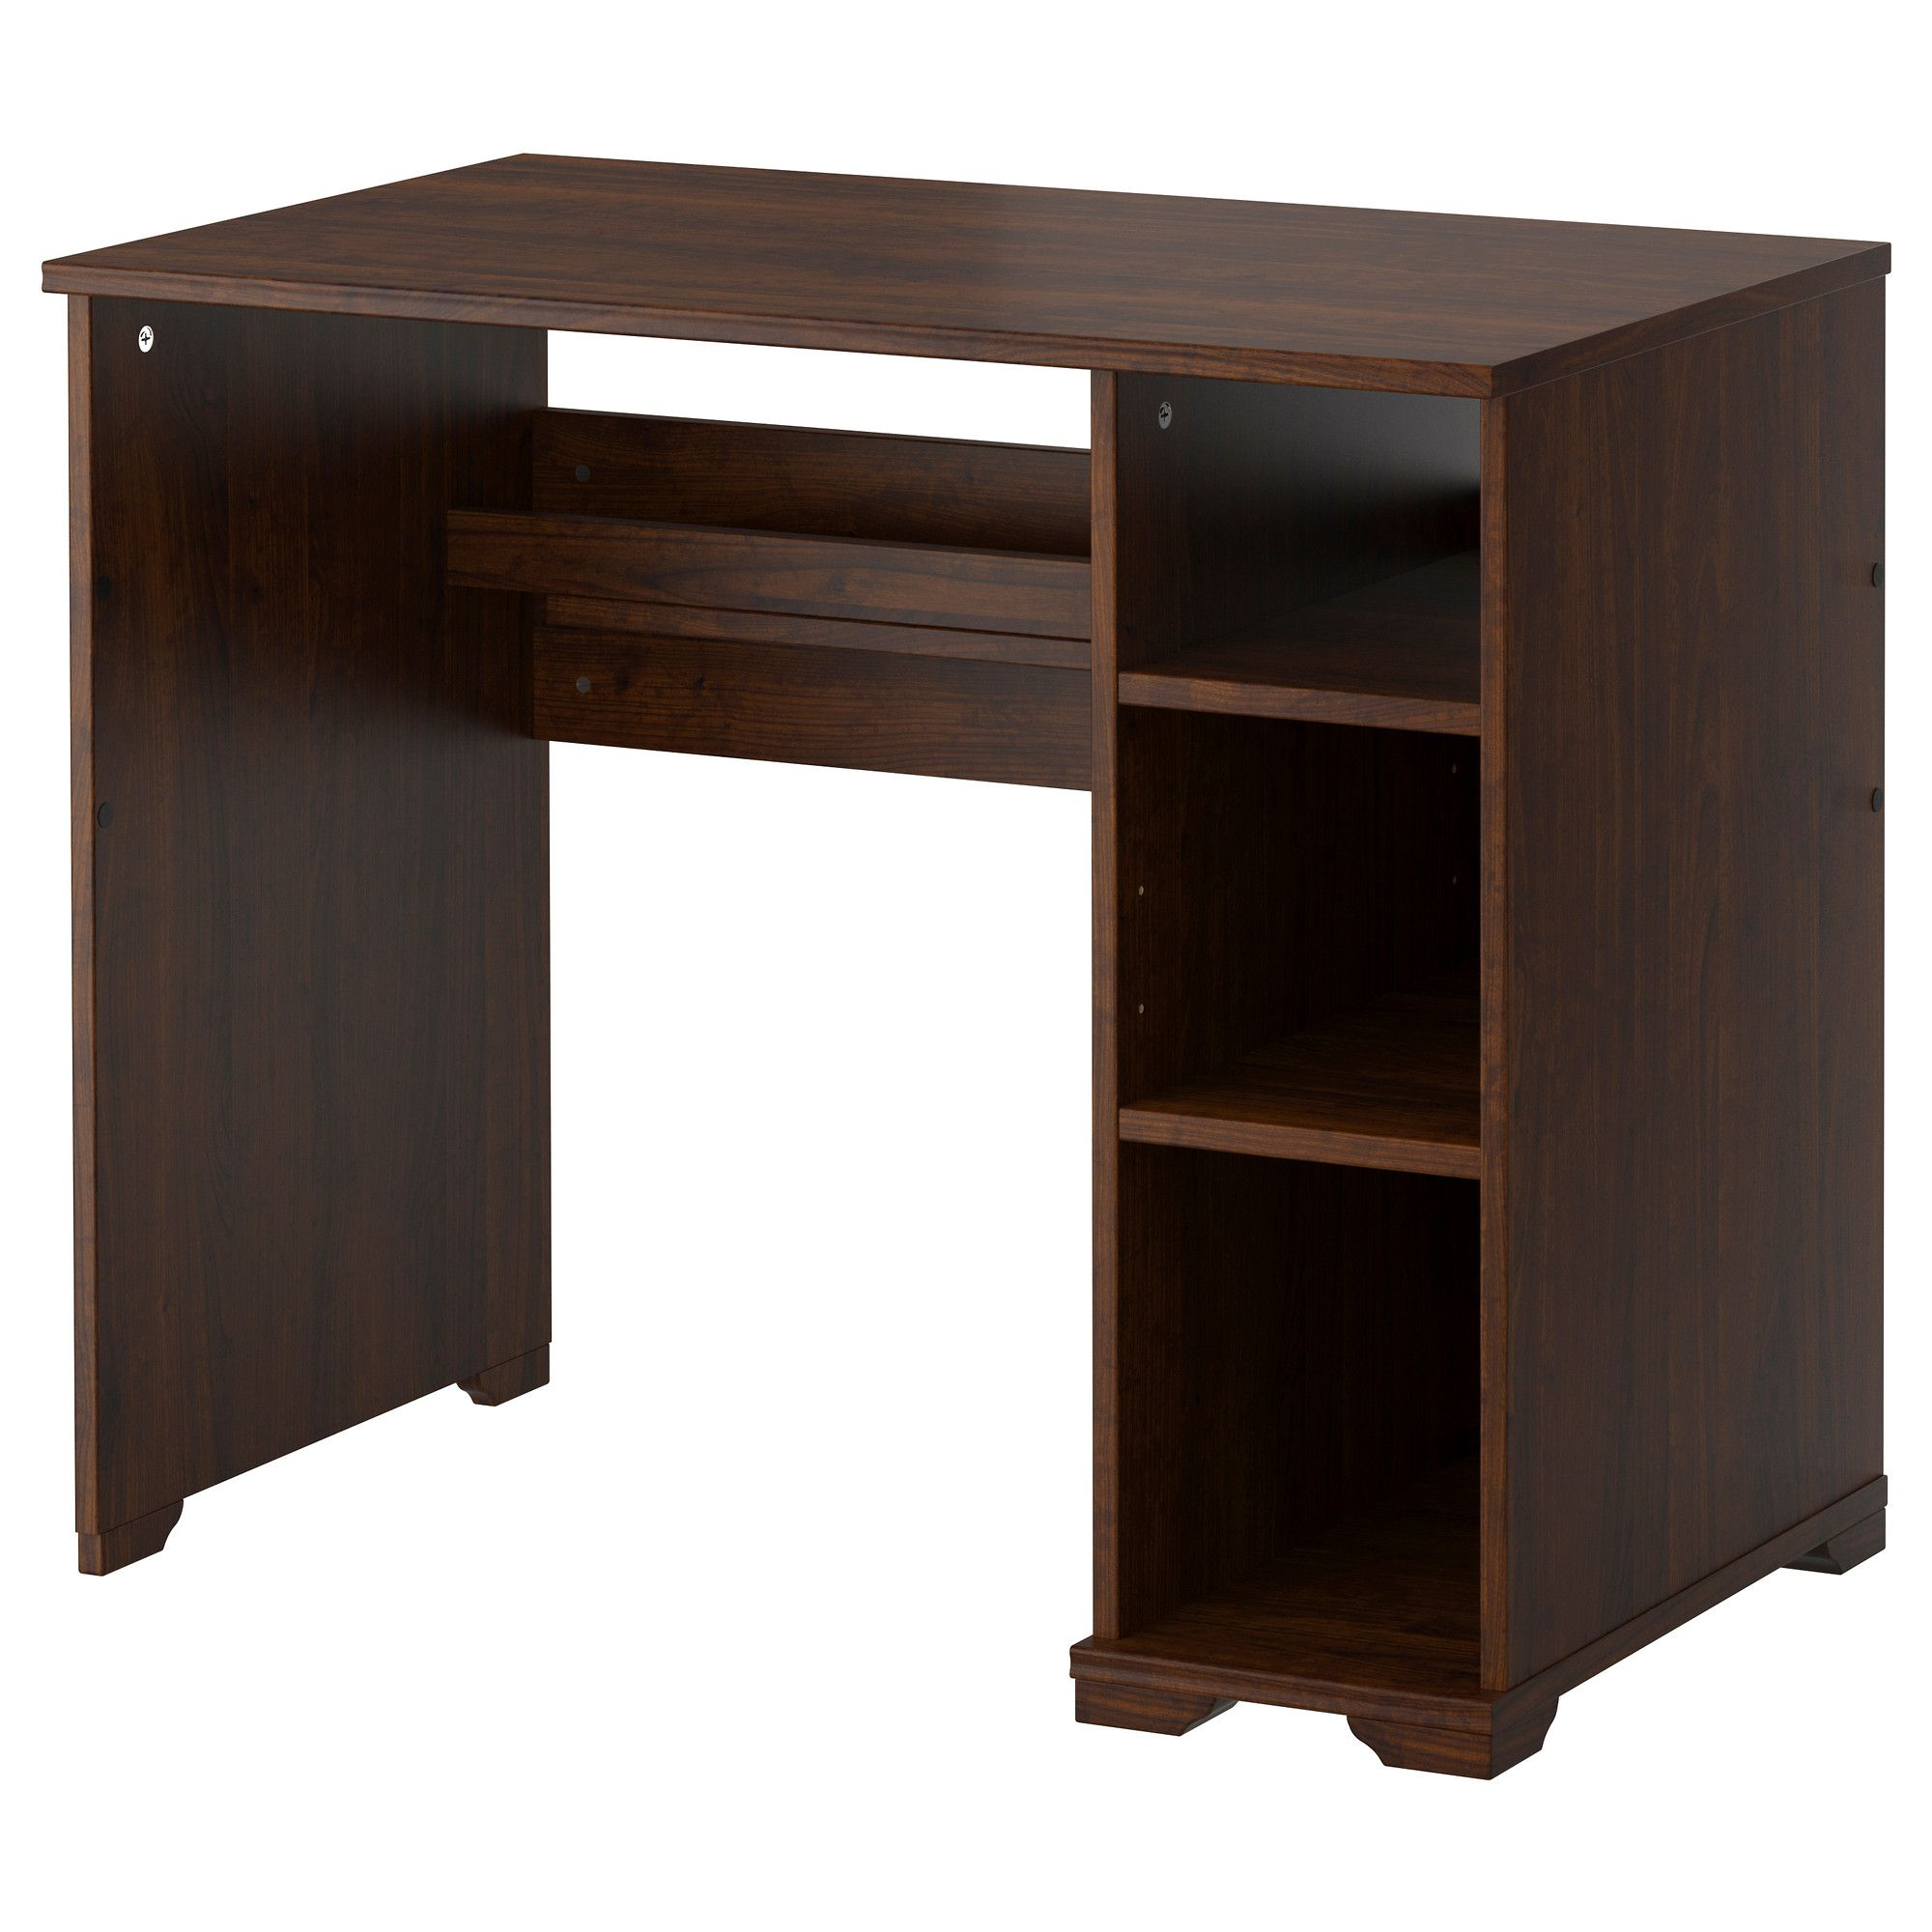 borgsj desk brown ikea up against the wall bed. Black Bedroom Furniture Sets. Home Design Ideas